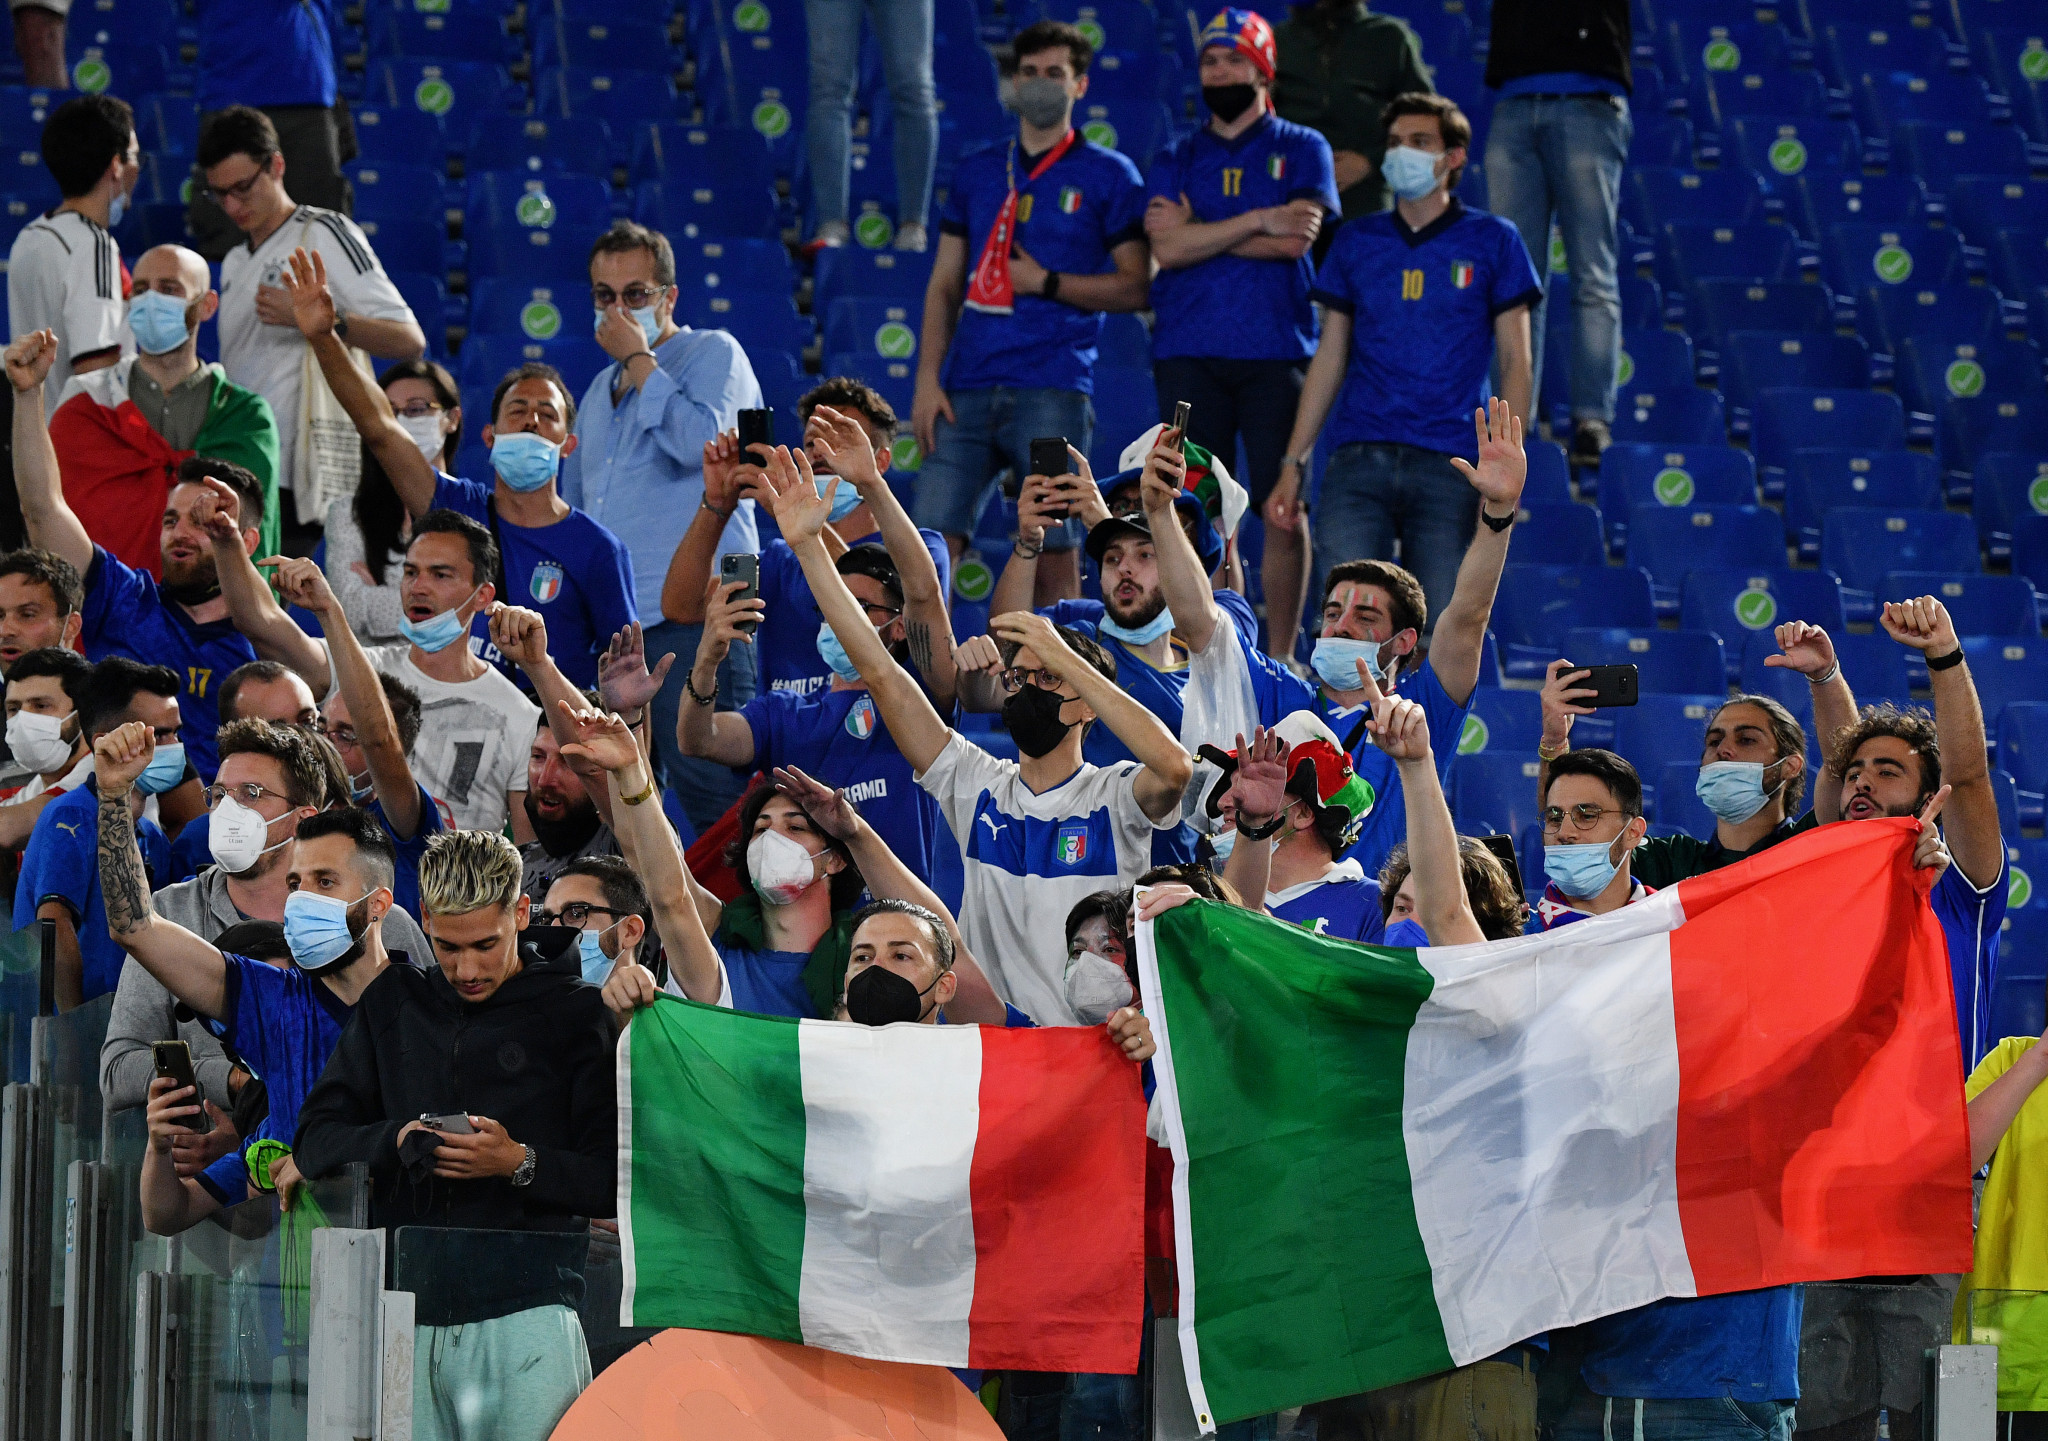 Italy fans celebrate their team winning the opening match of the delayed UEFA Euro 2020 ©Getty Images